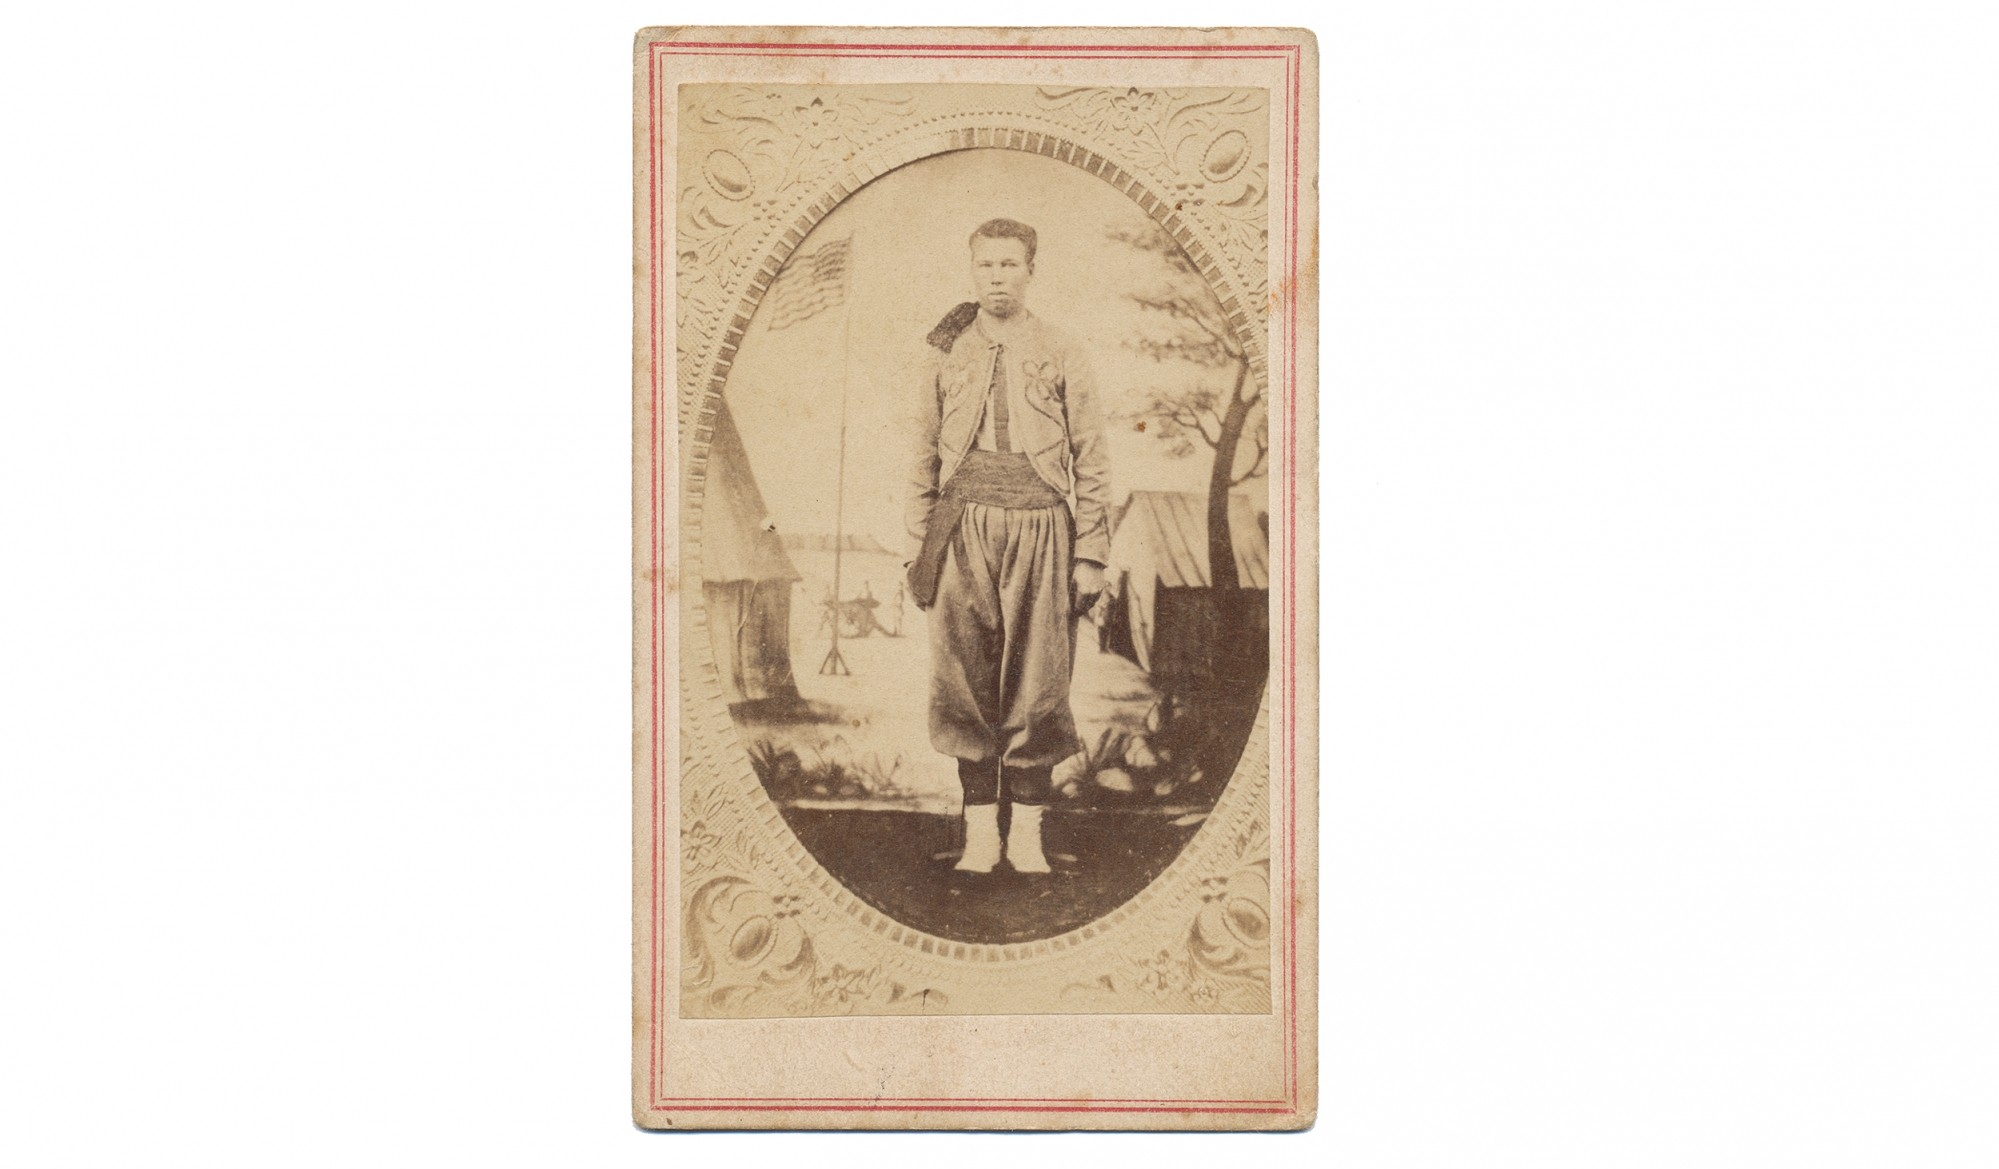 CIVIL WAR PERIOD CDV COPY OF A TINTYPE OF 146TH NEW YORK ZOUAVE KILLED IN ACTION